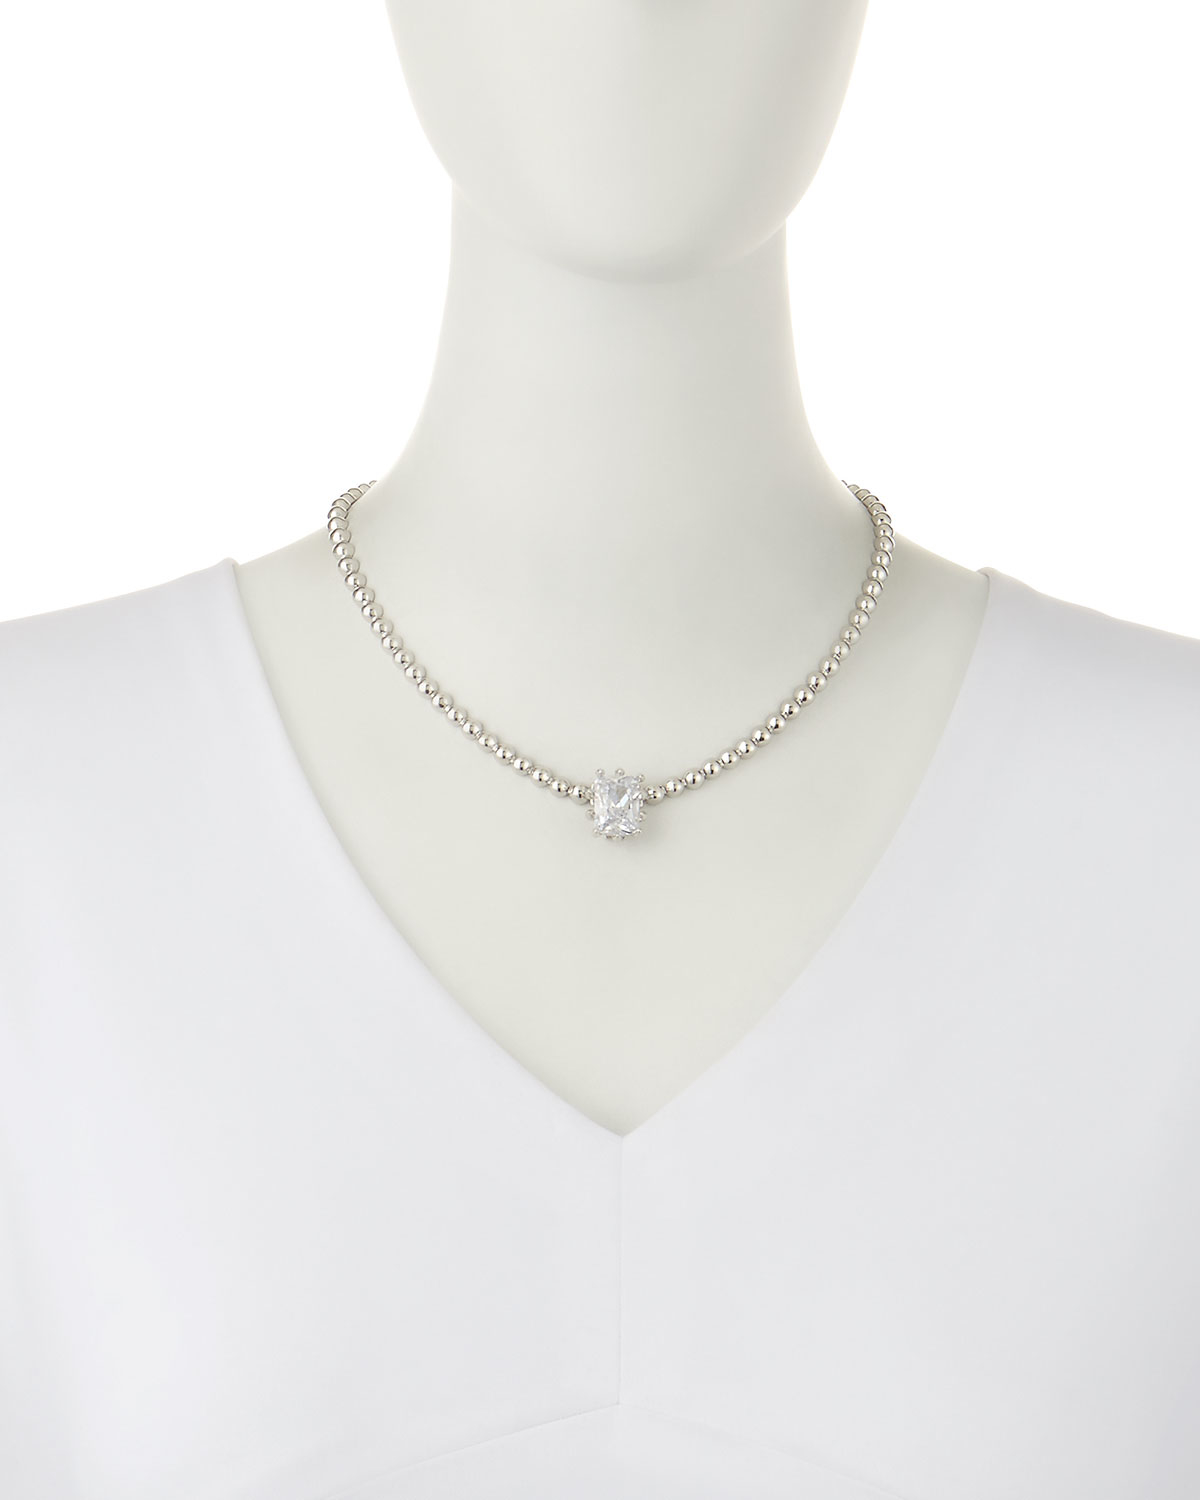 shreve necklace sapphire ceylon collection estate item